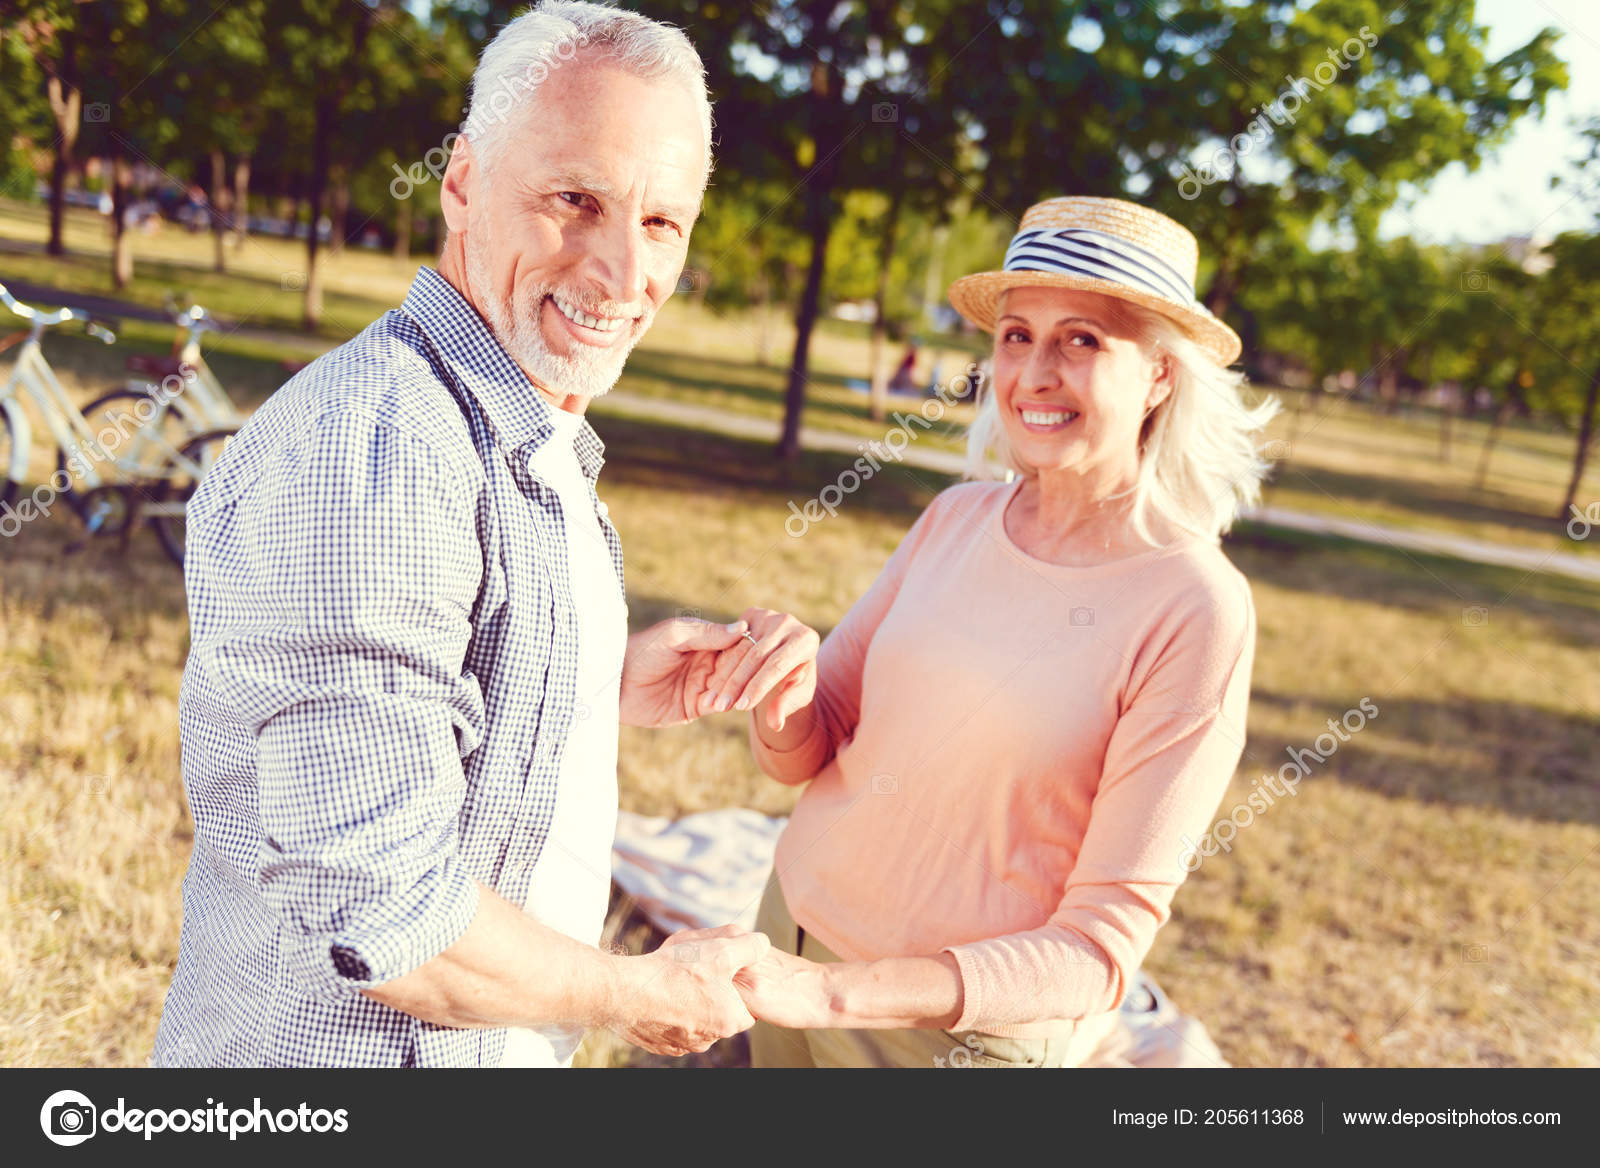 Looking For A Mature Dating Online Site